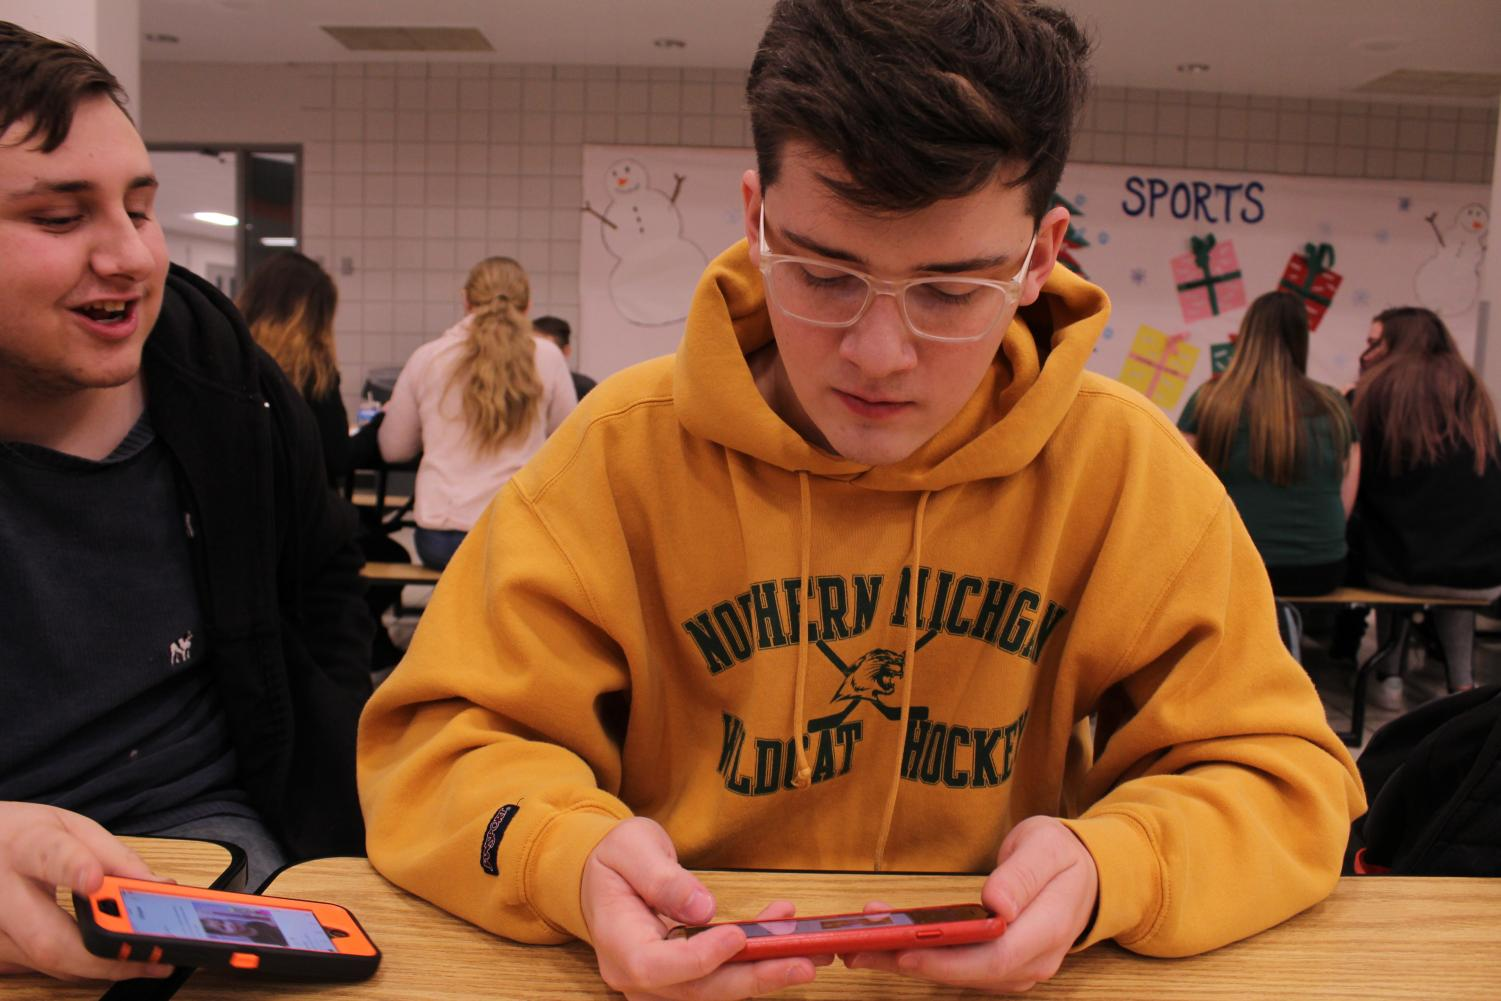 Students like junior Andrew Carriero play Fortnite in school, distracting both themselves and the other students around them.